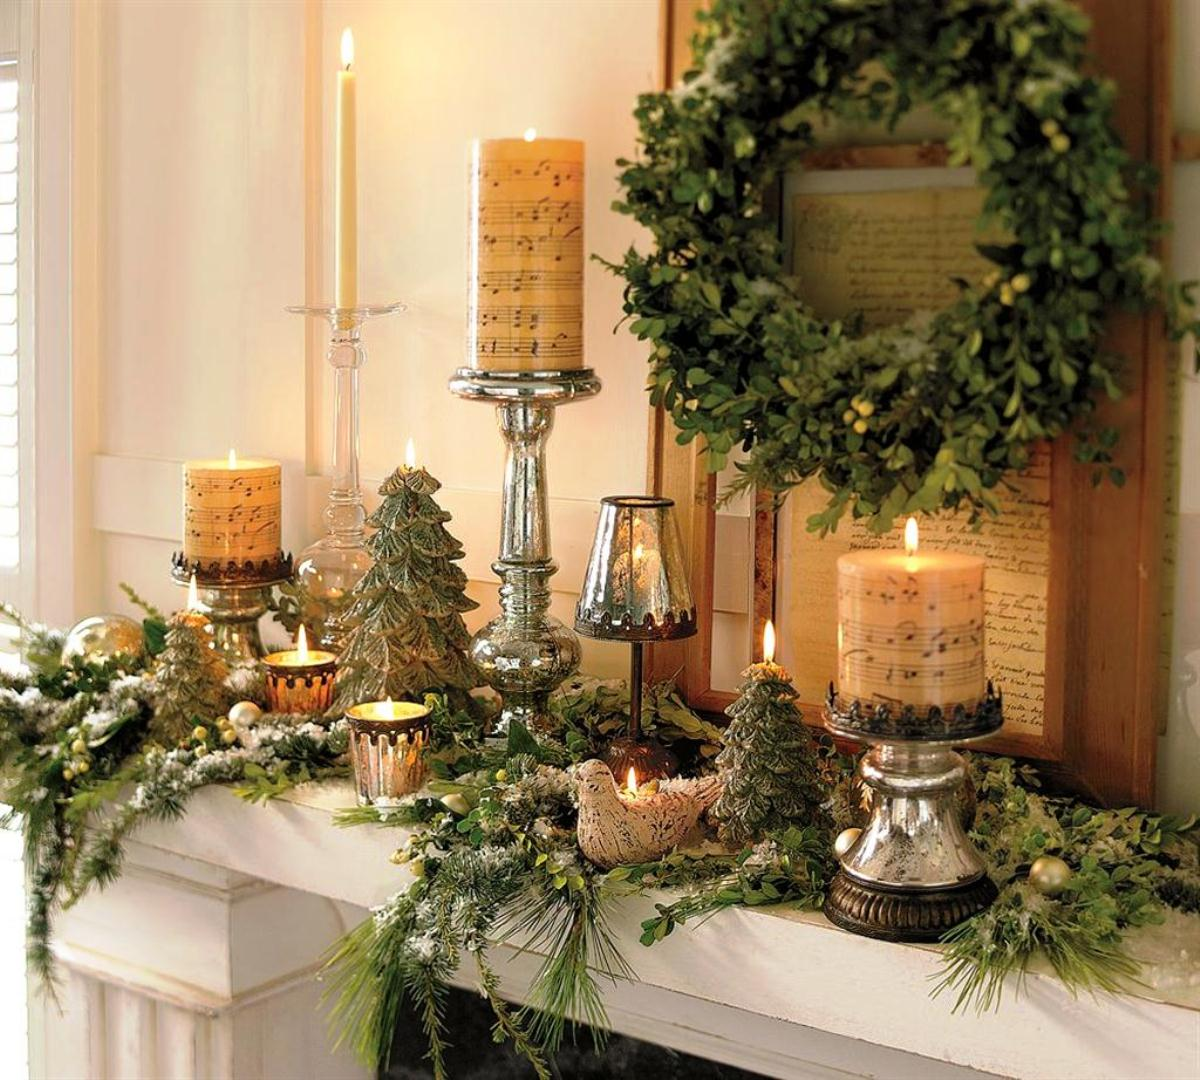 Decoration Ideas: 50 Best Indoor Decoration Ideas For Christmas In 2019